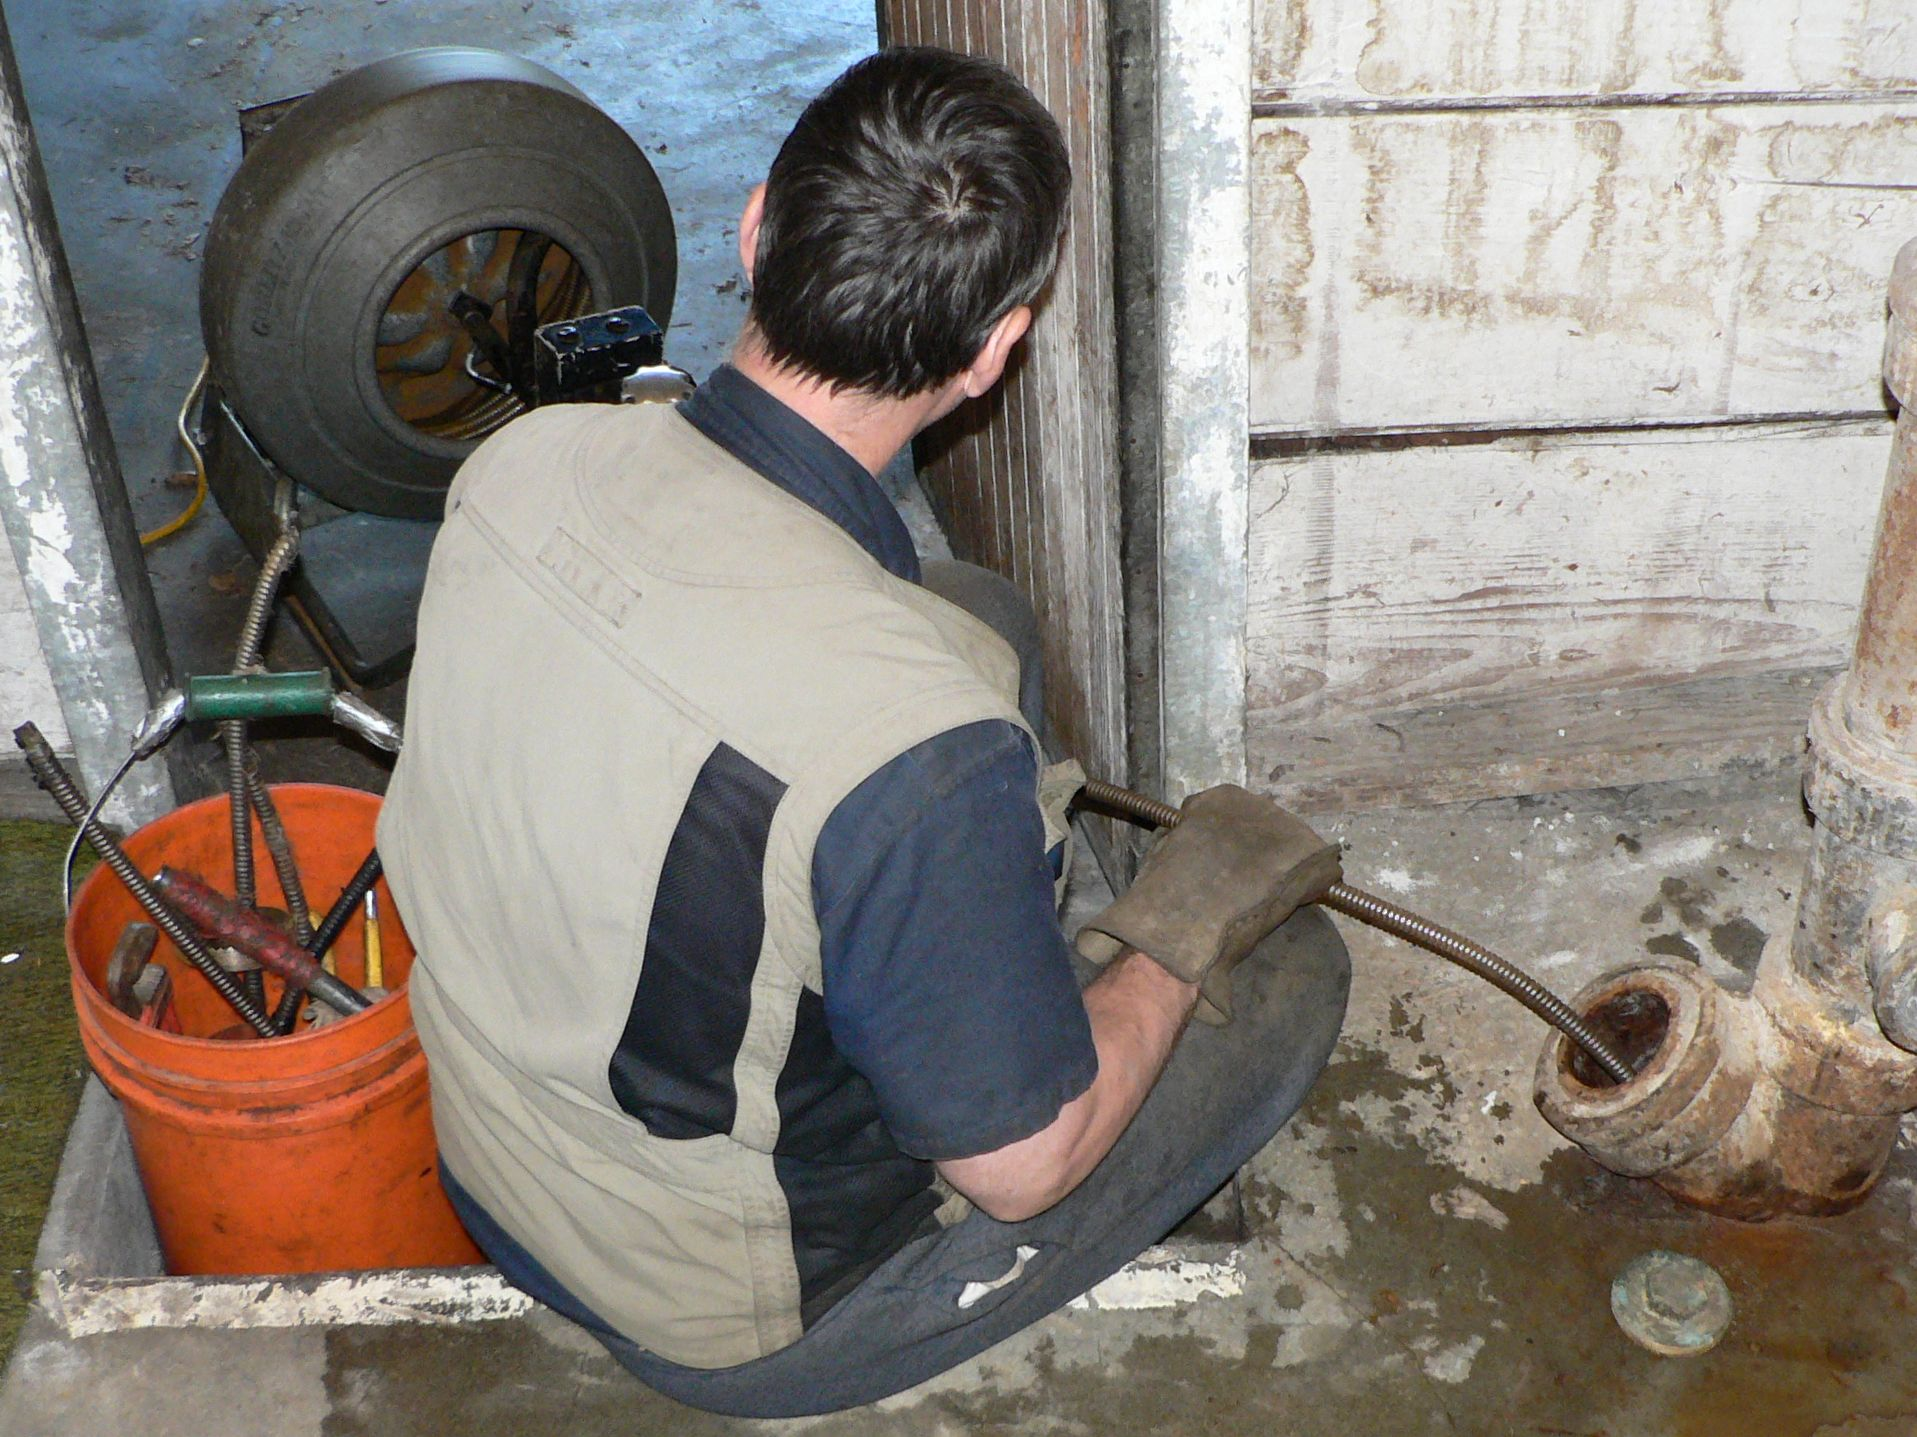 plumber working on a blocked drain